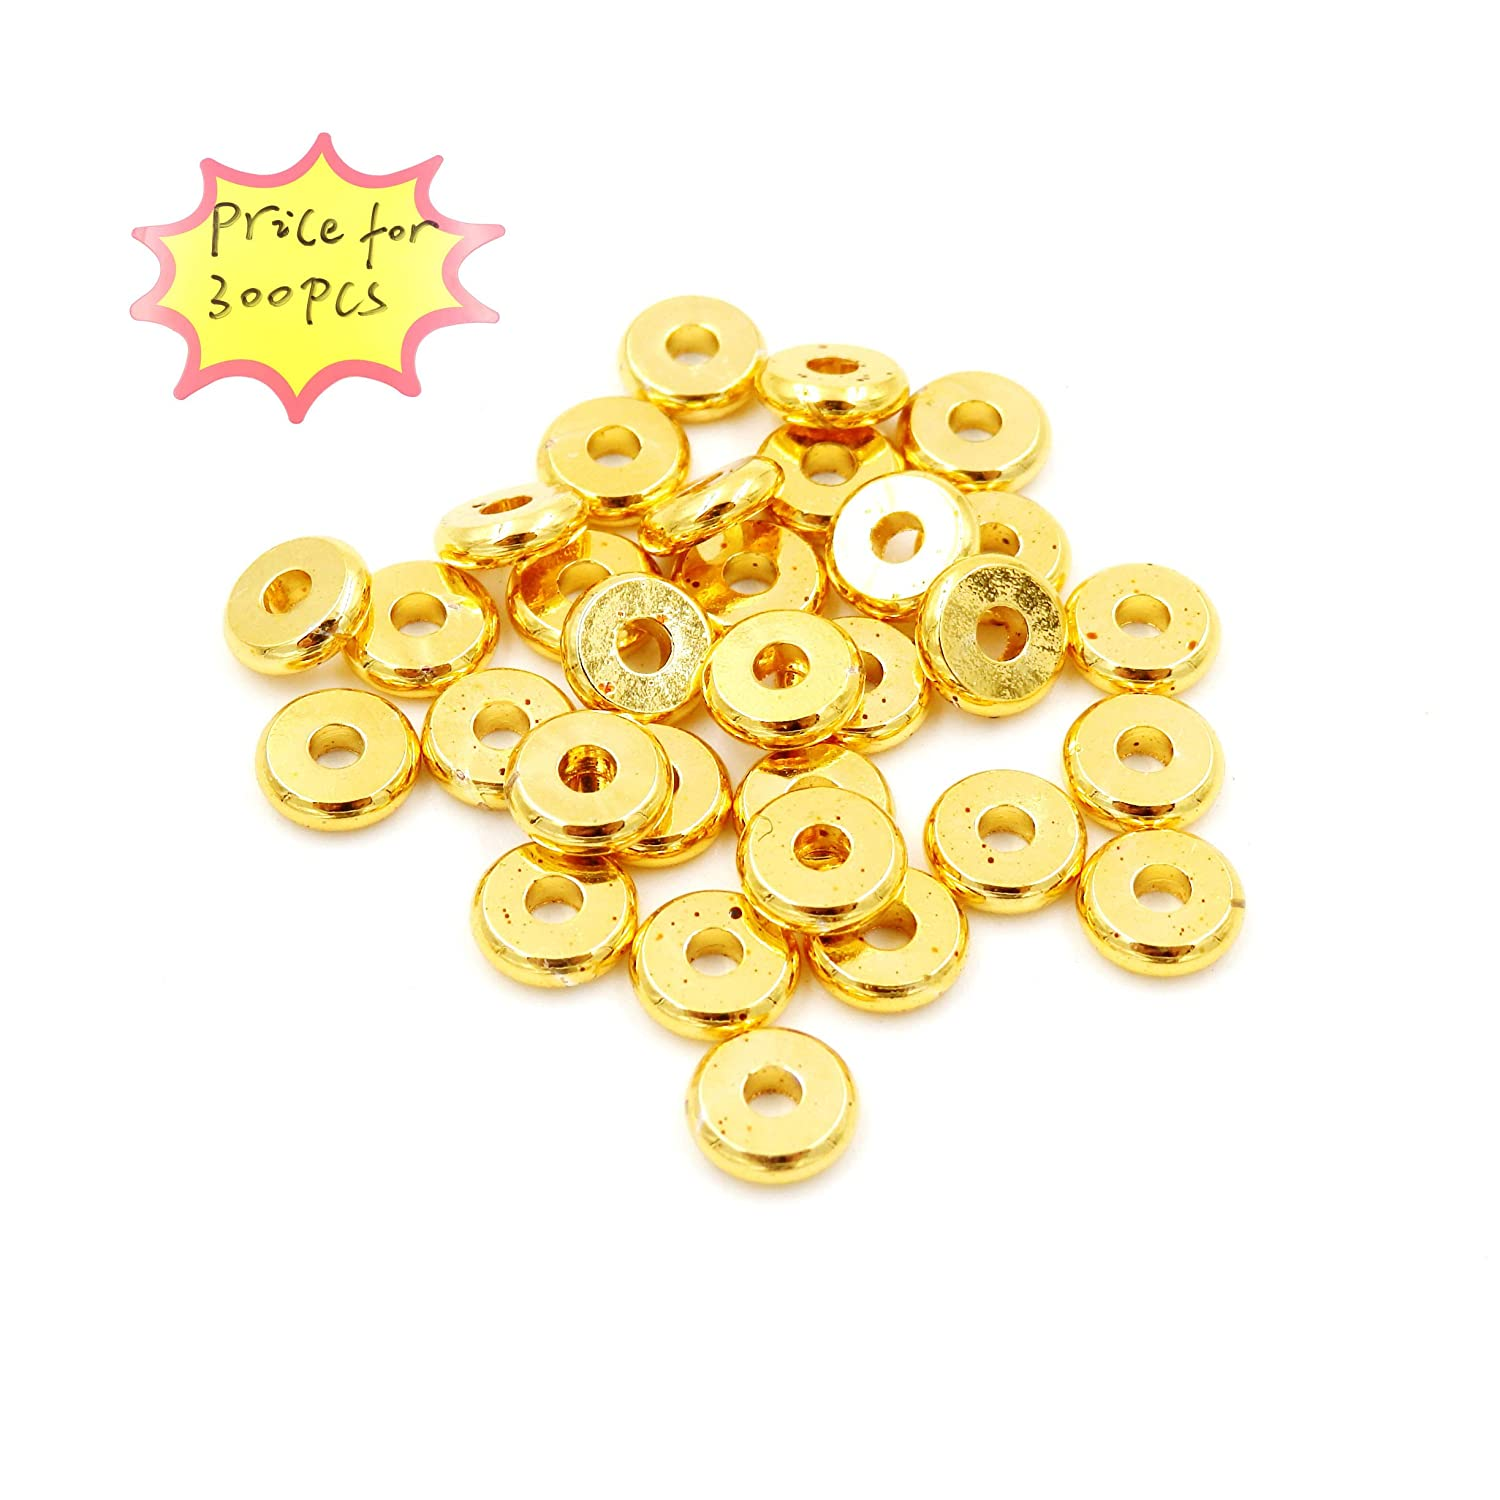 3mm Gold Metal Beads for Jewelry Making Jewelry findings Sold per Bag 900pcs Inside